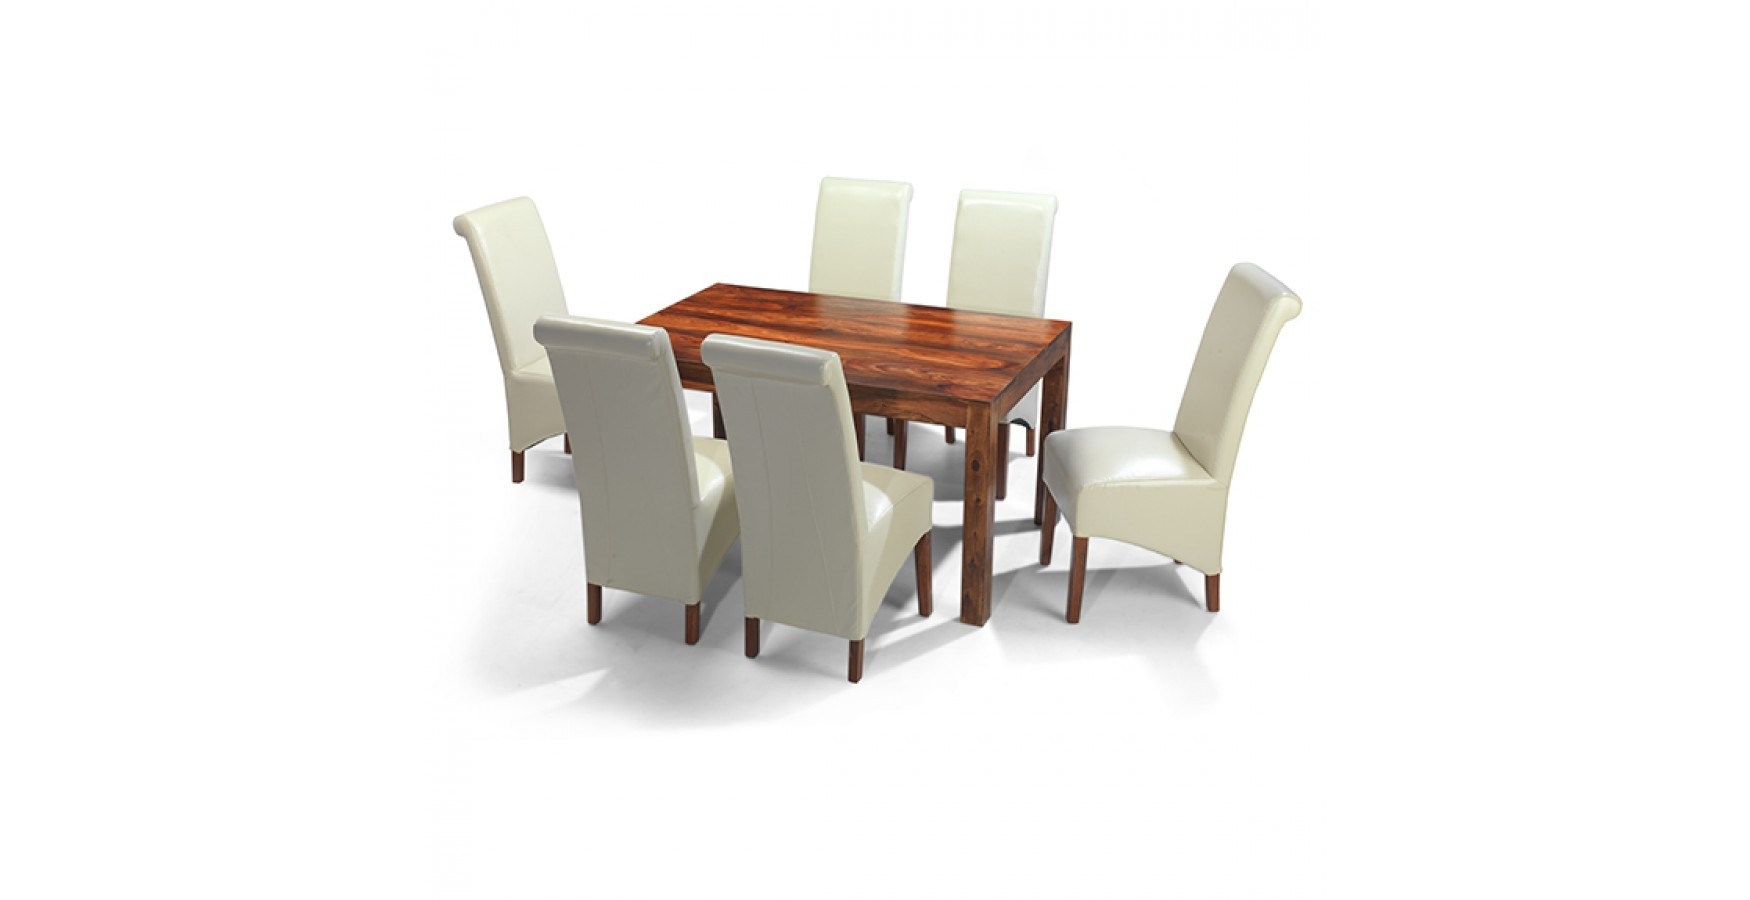 Cuba sheesham 140 cm dining table and 6 chairs lifestyle for Table and 6 chairs uk